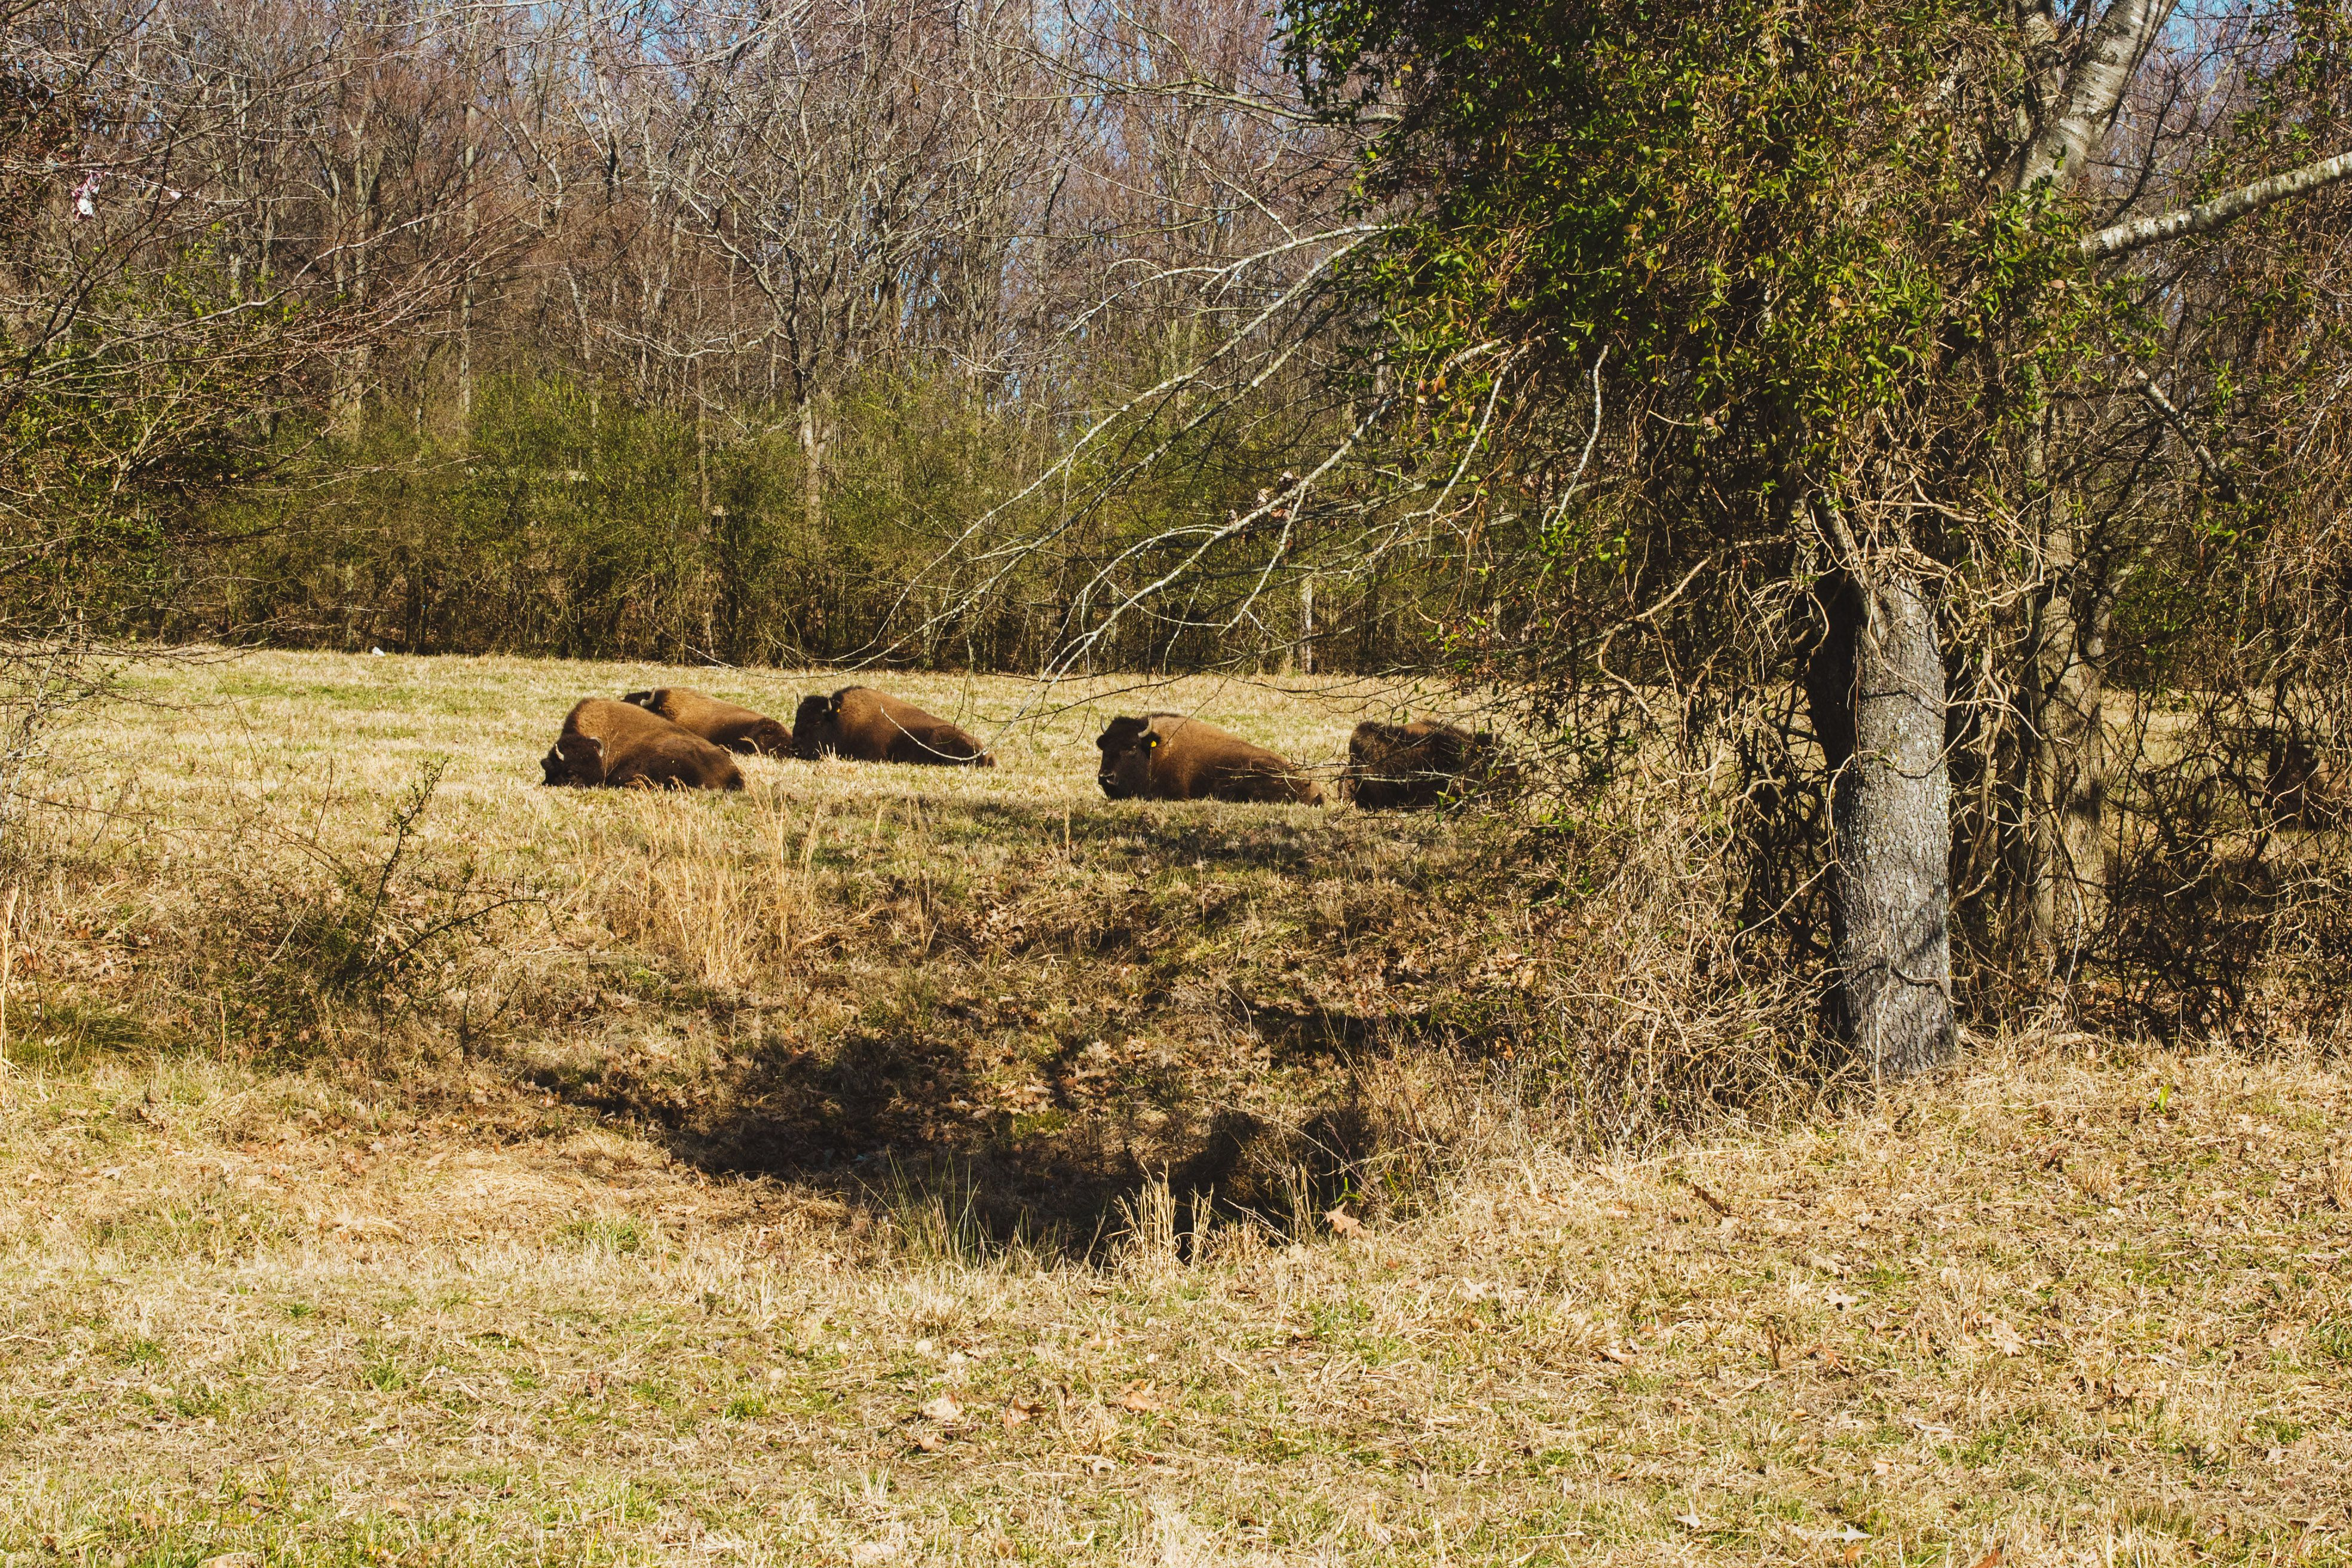 Bison at Shelby Farms in Memphis